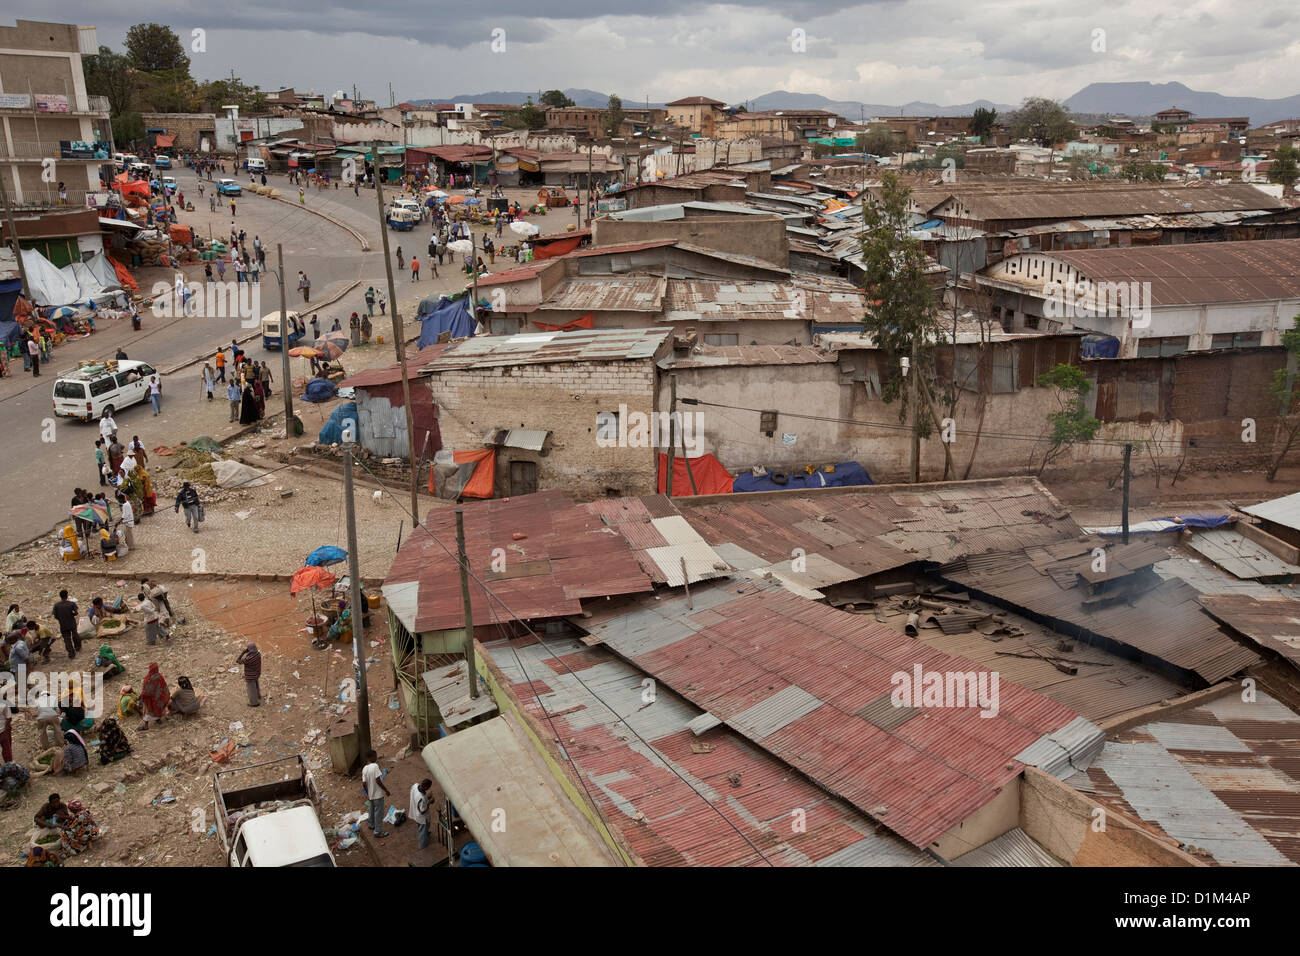 View over Harar, Ethiopia. - Stock Image